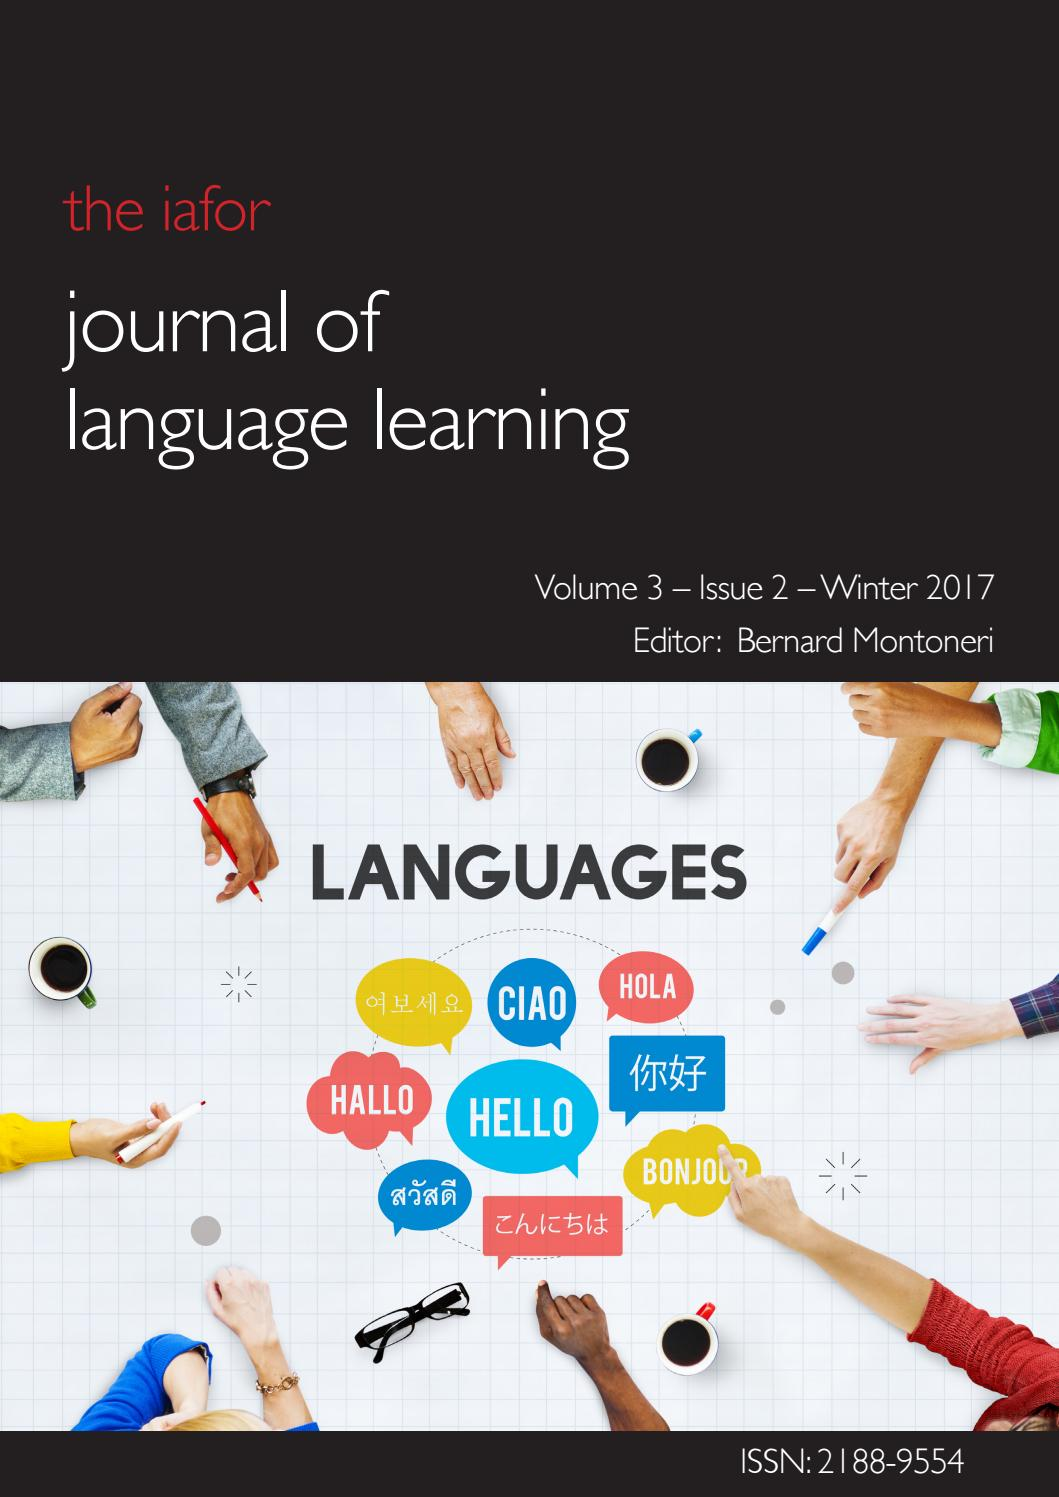 IAFOR Journal of Language Learning Volume 3 Issue 2 by IAFOR